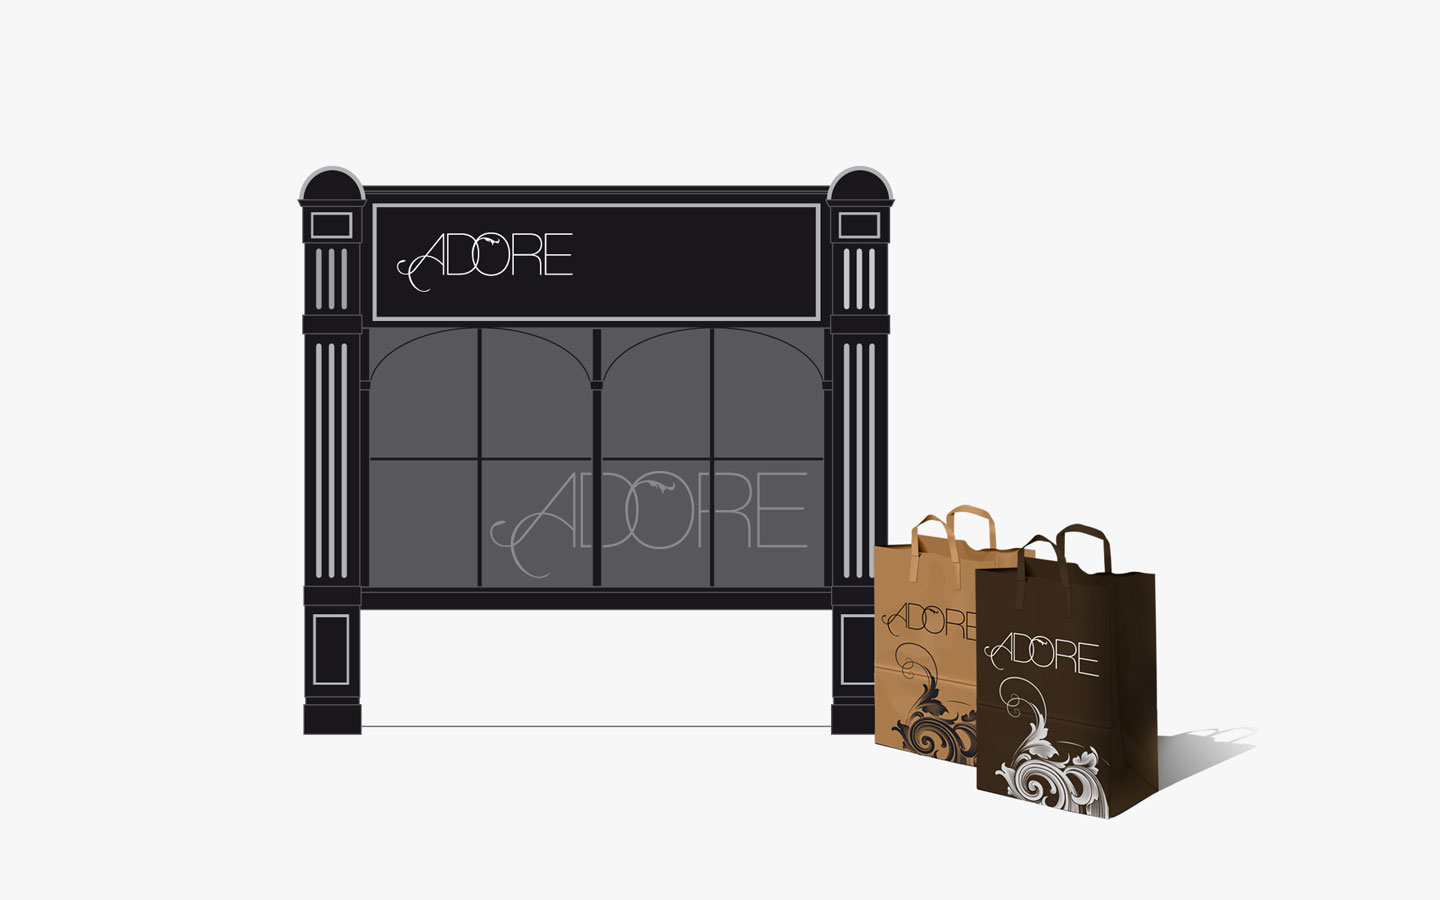 Adore Boutique Cleethorpes, Logo Design in Signage and Bag Design